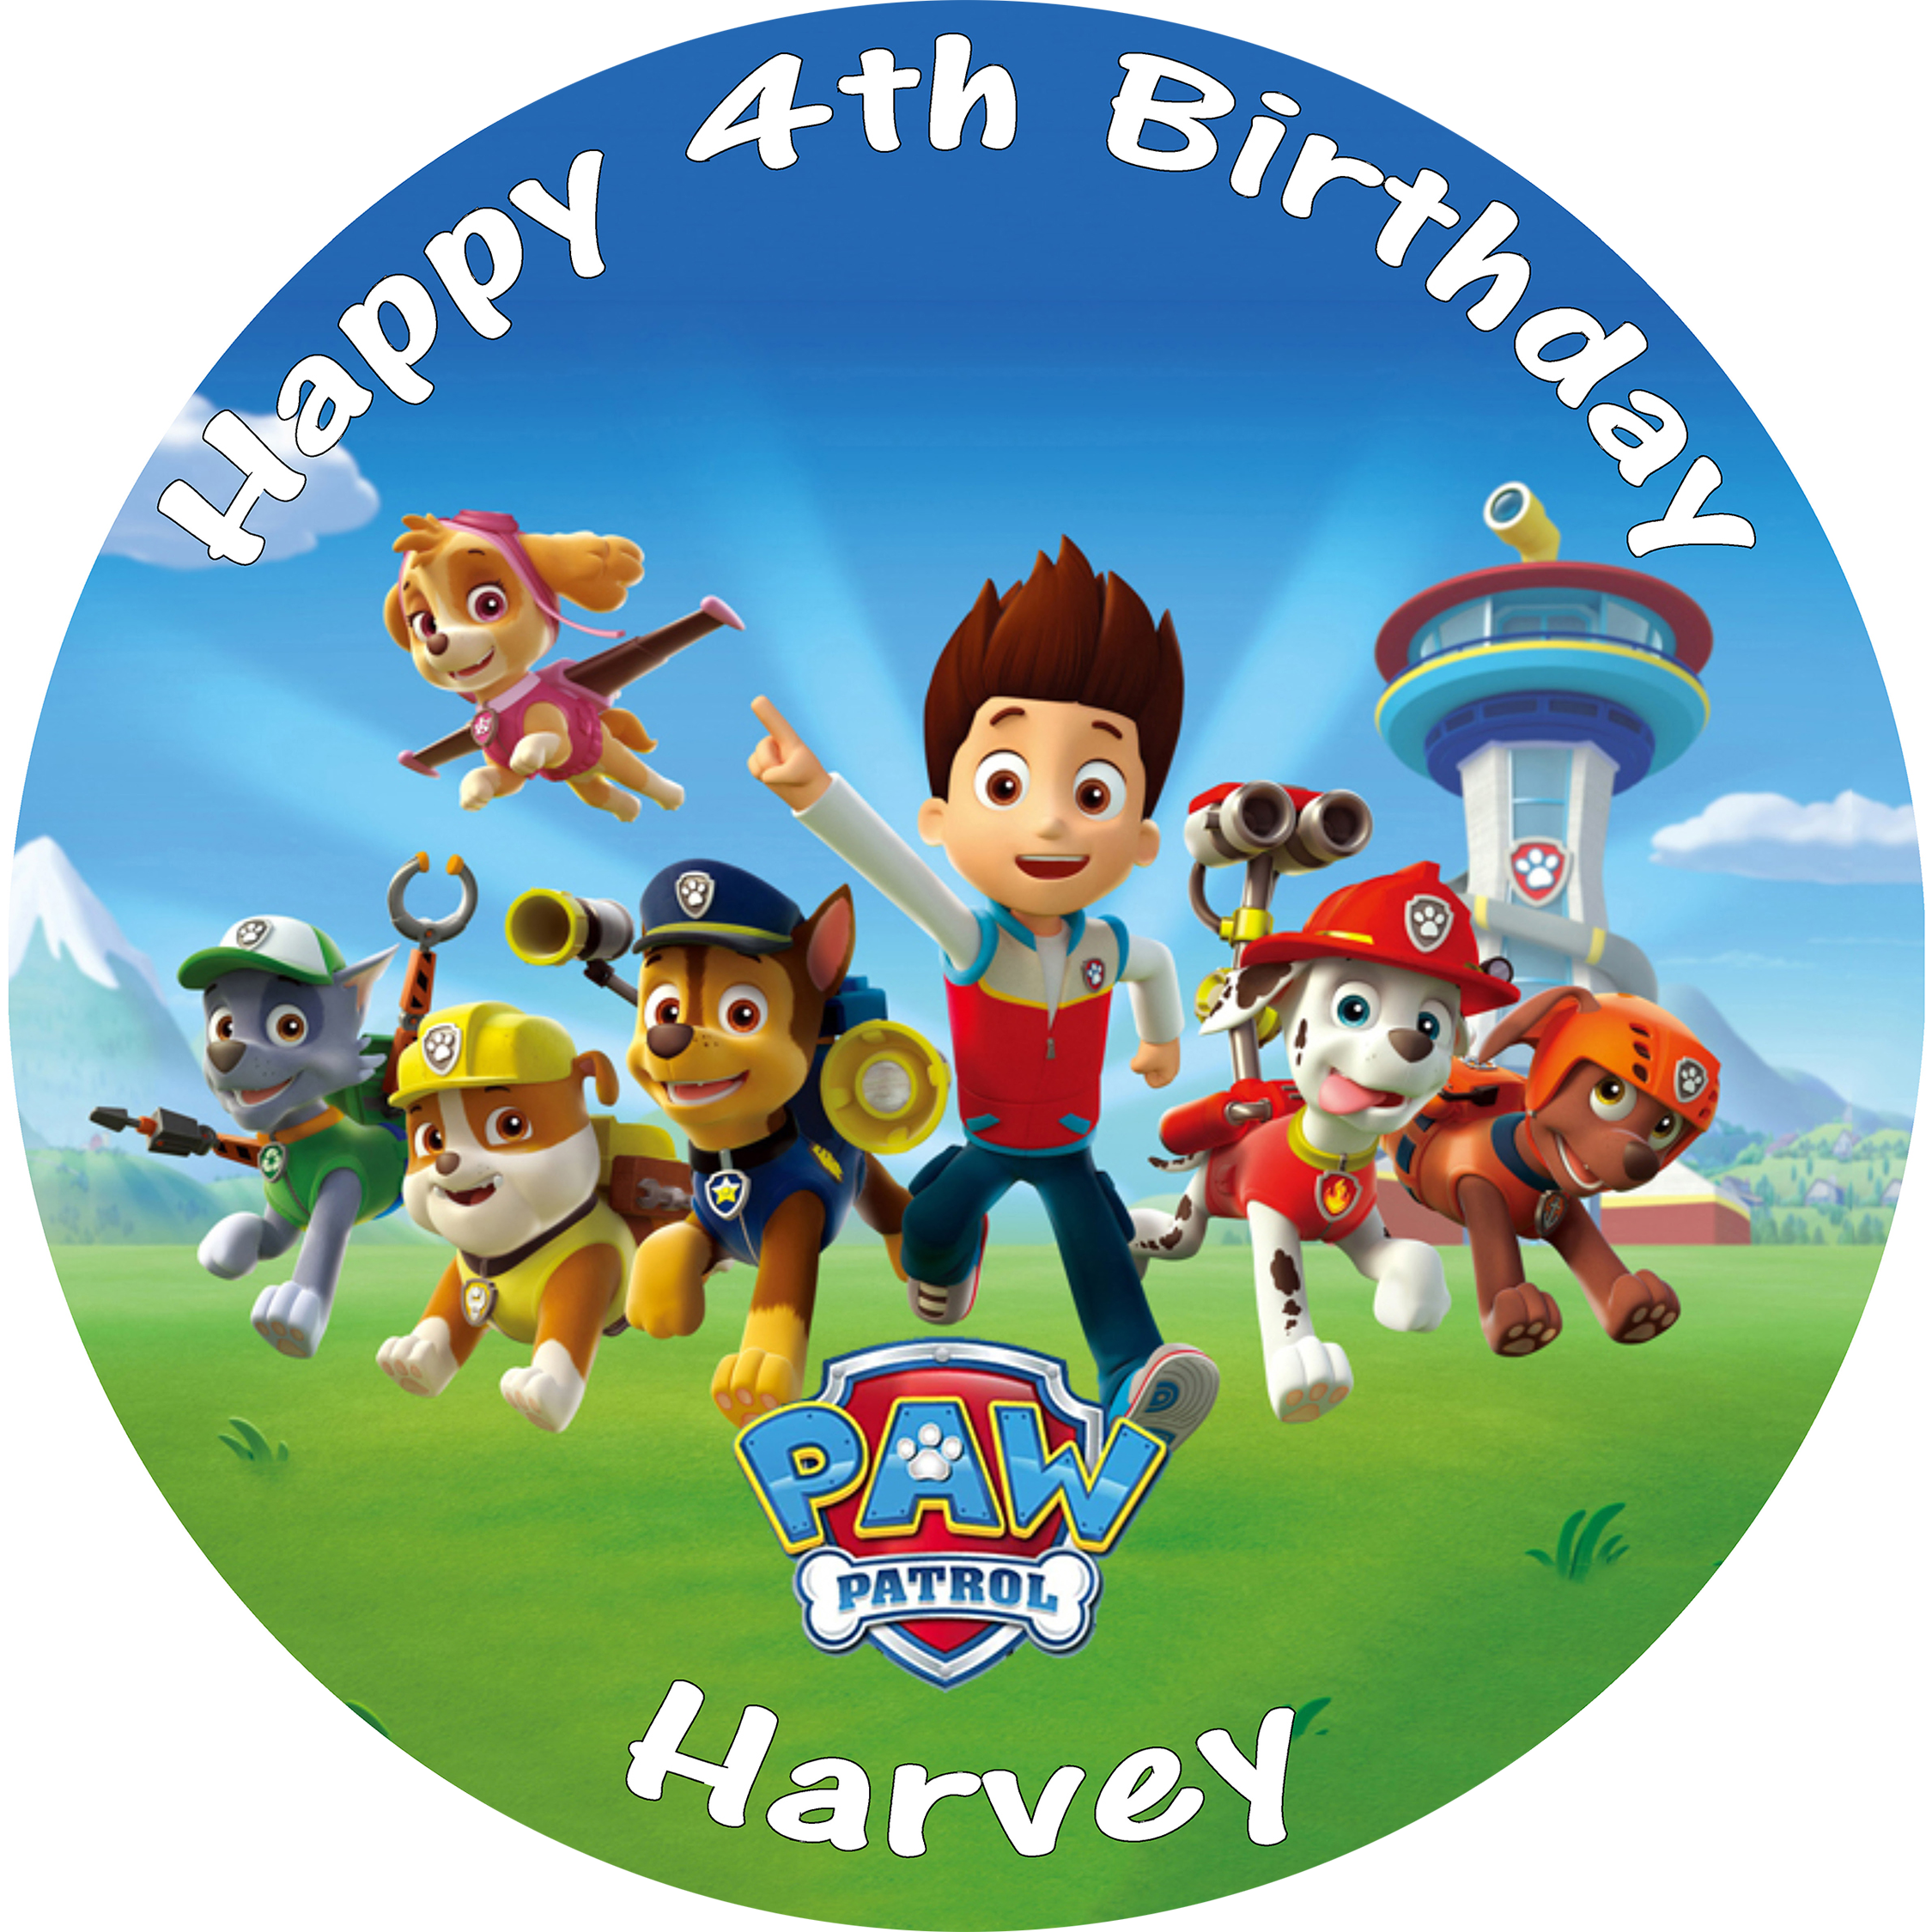 Paw patrol birthday png. Cake topper edible round